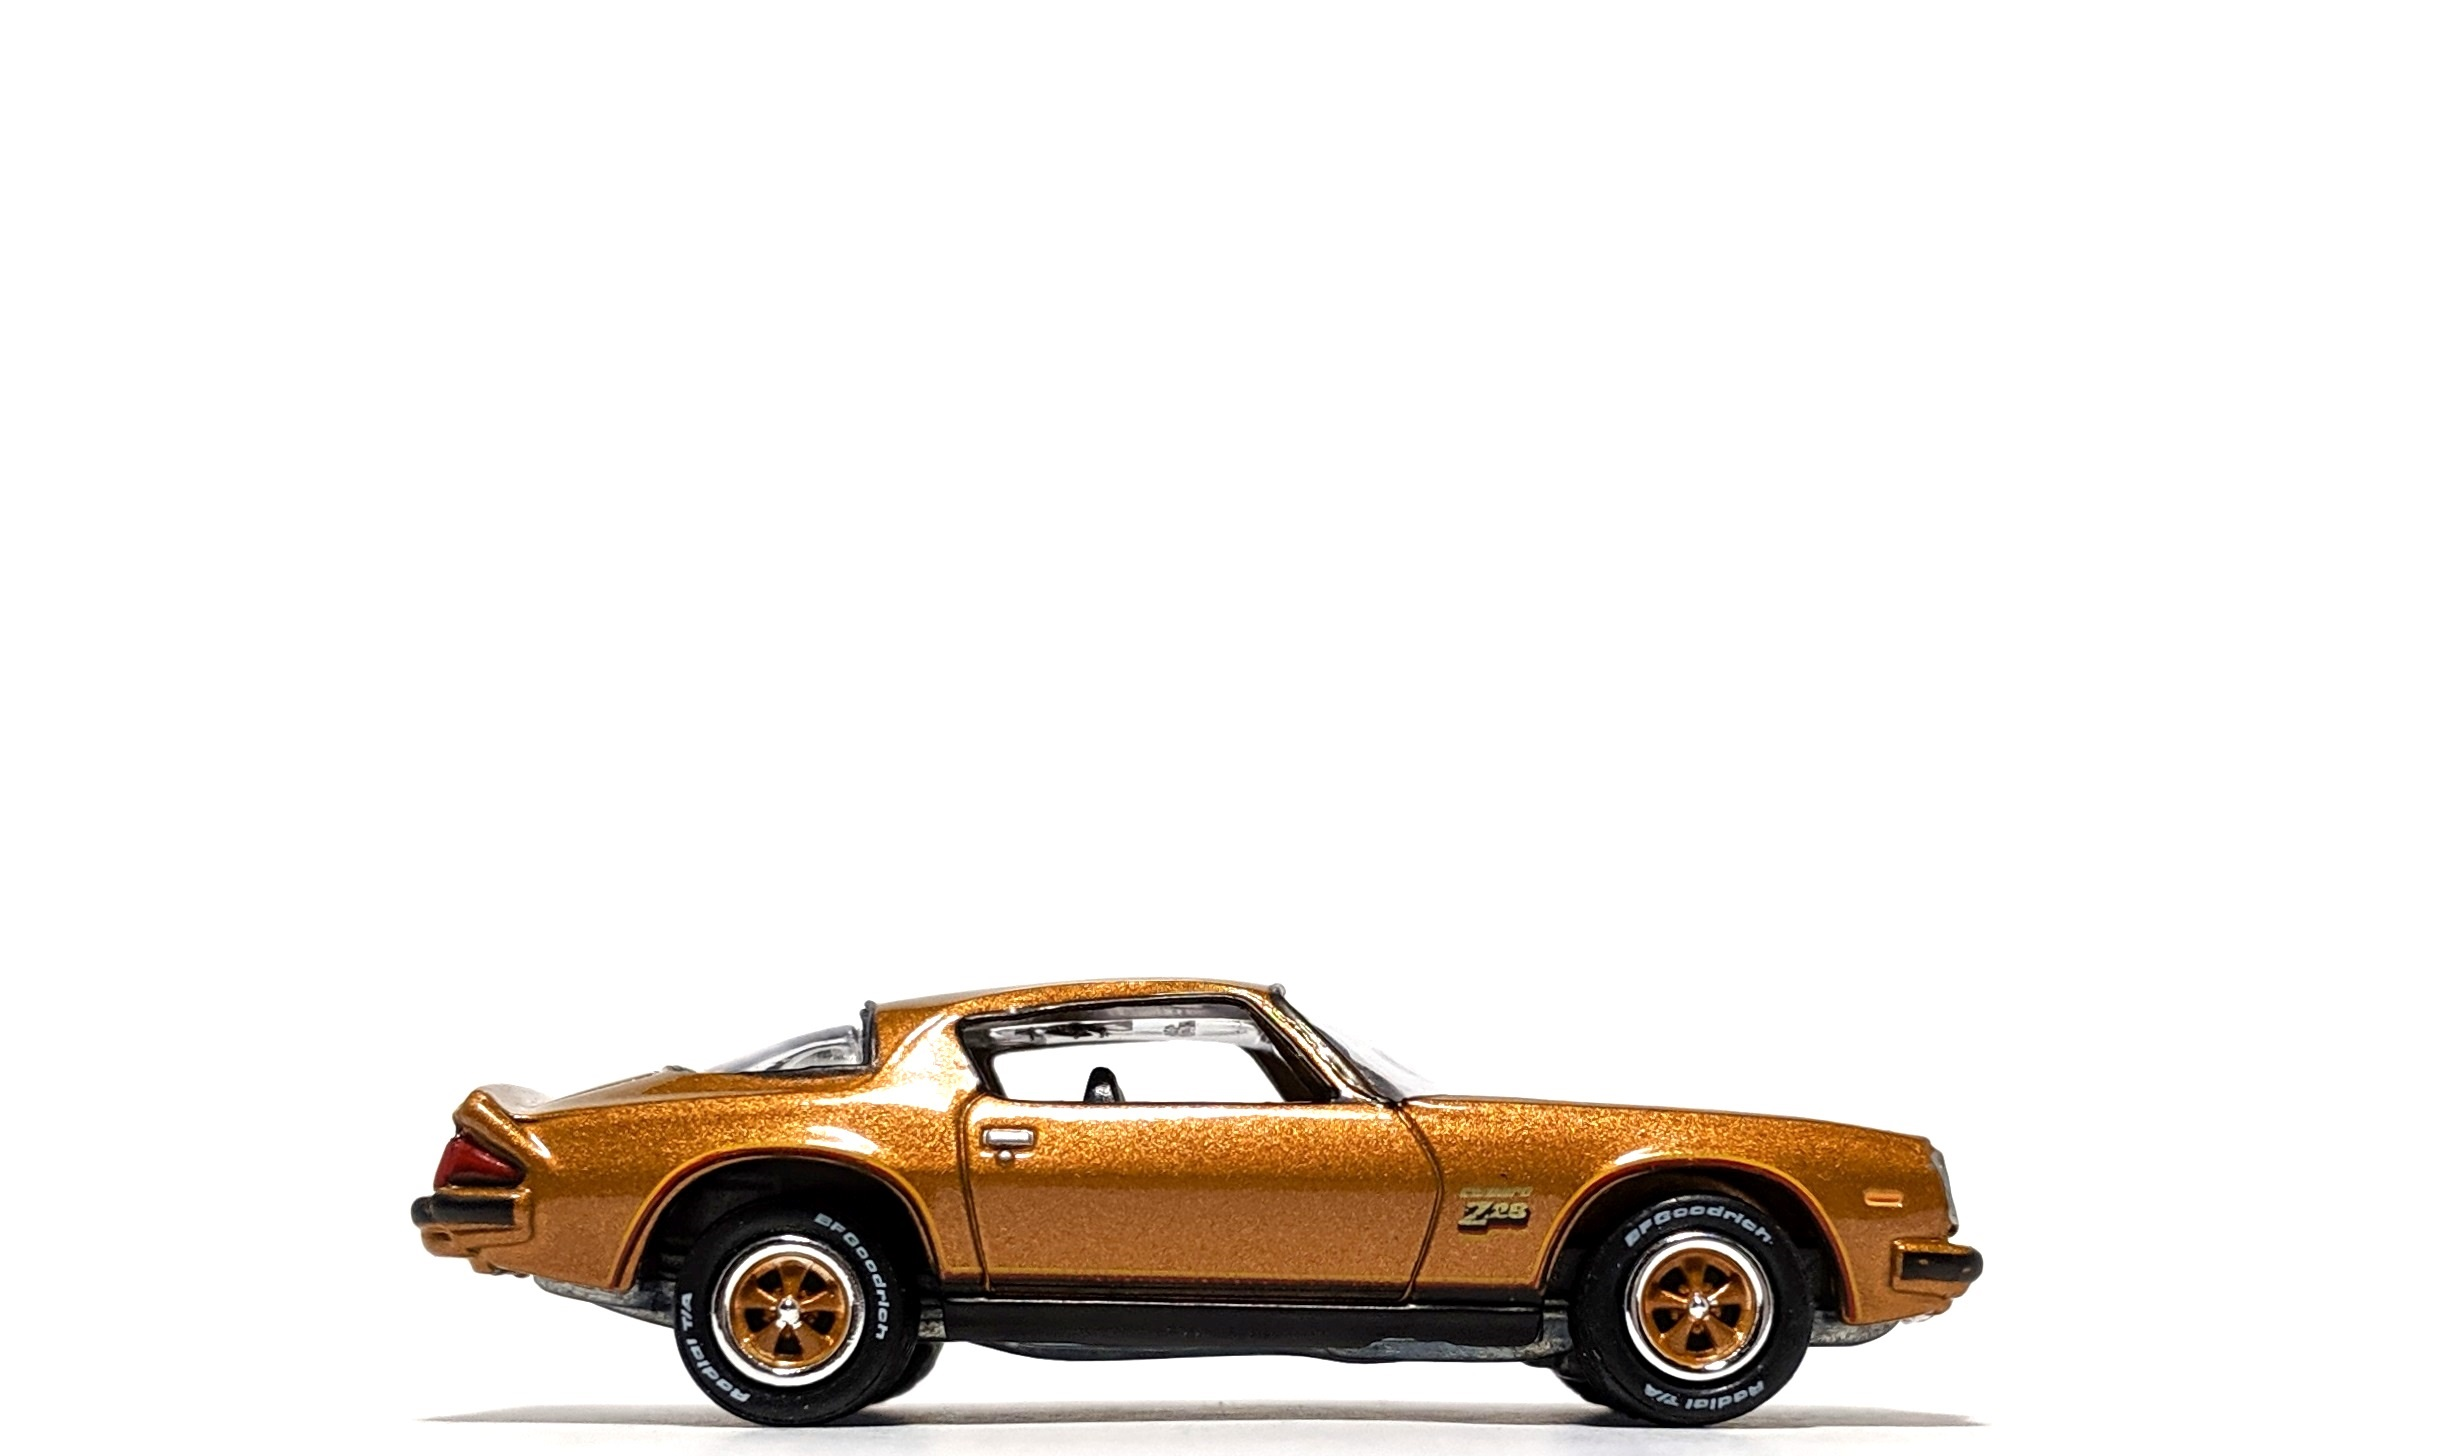 1977 Chevrolet Camaro Z28 - Johnny Lightning